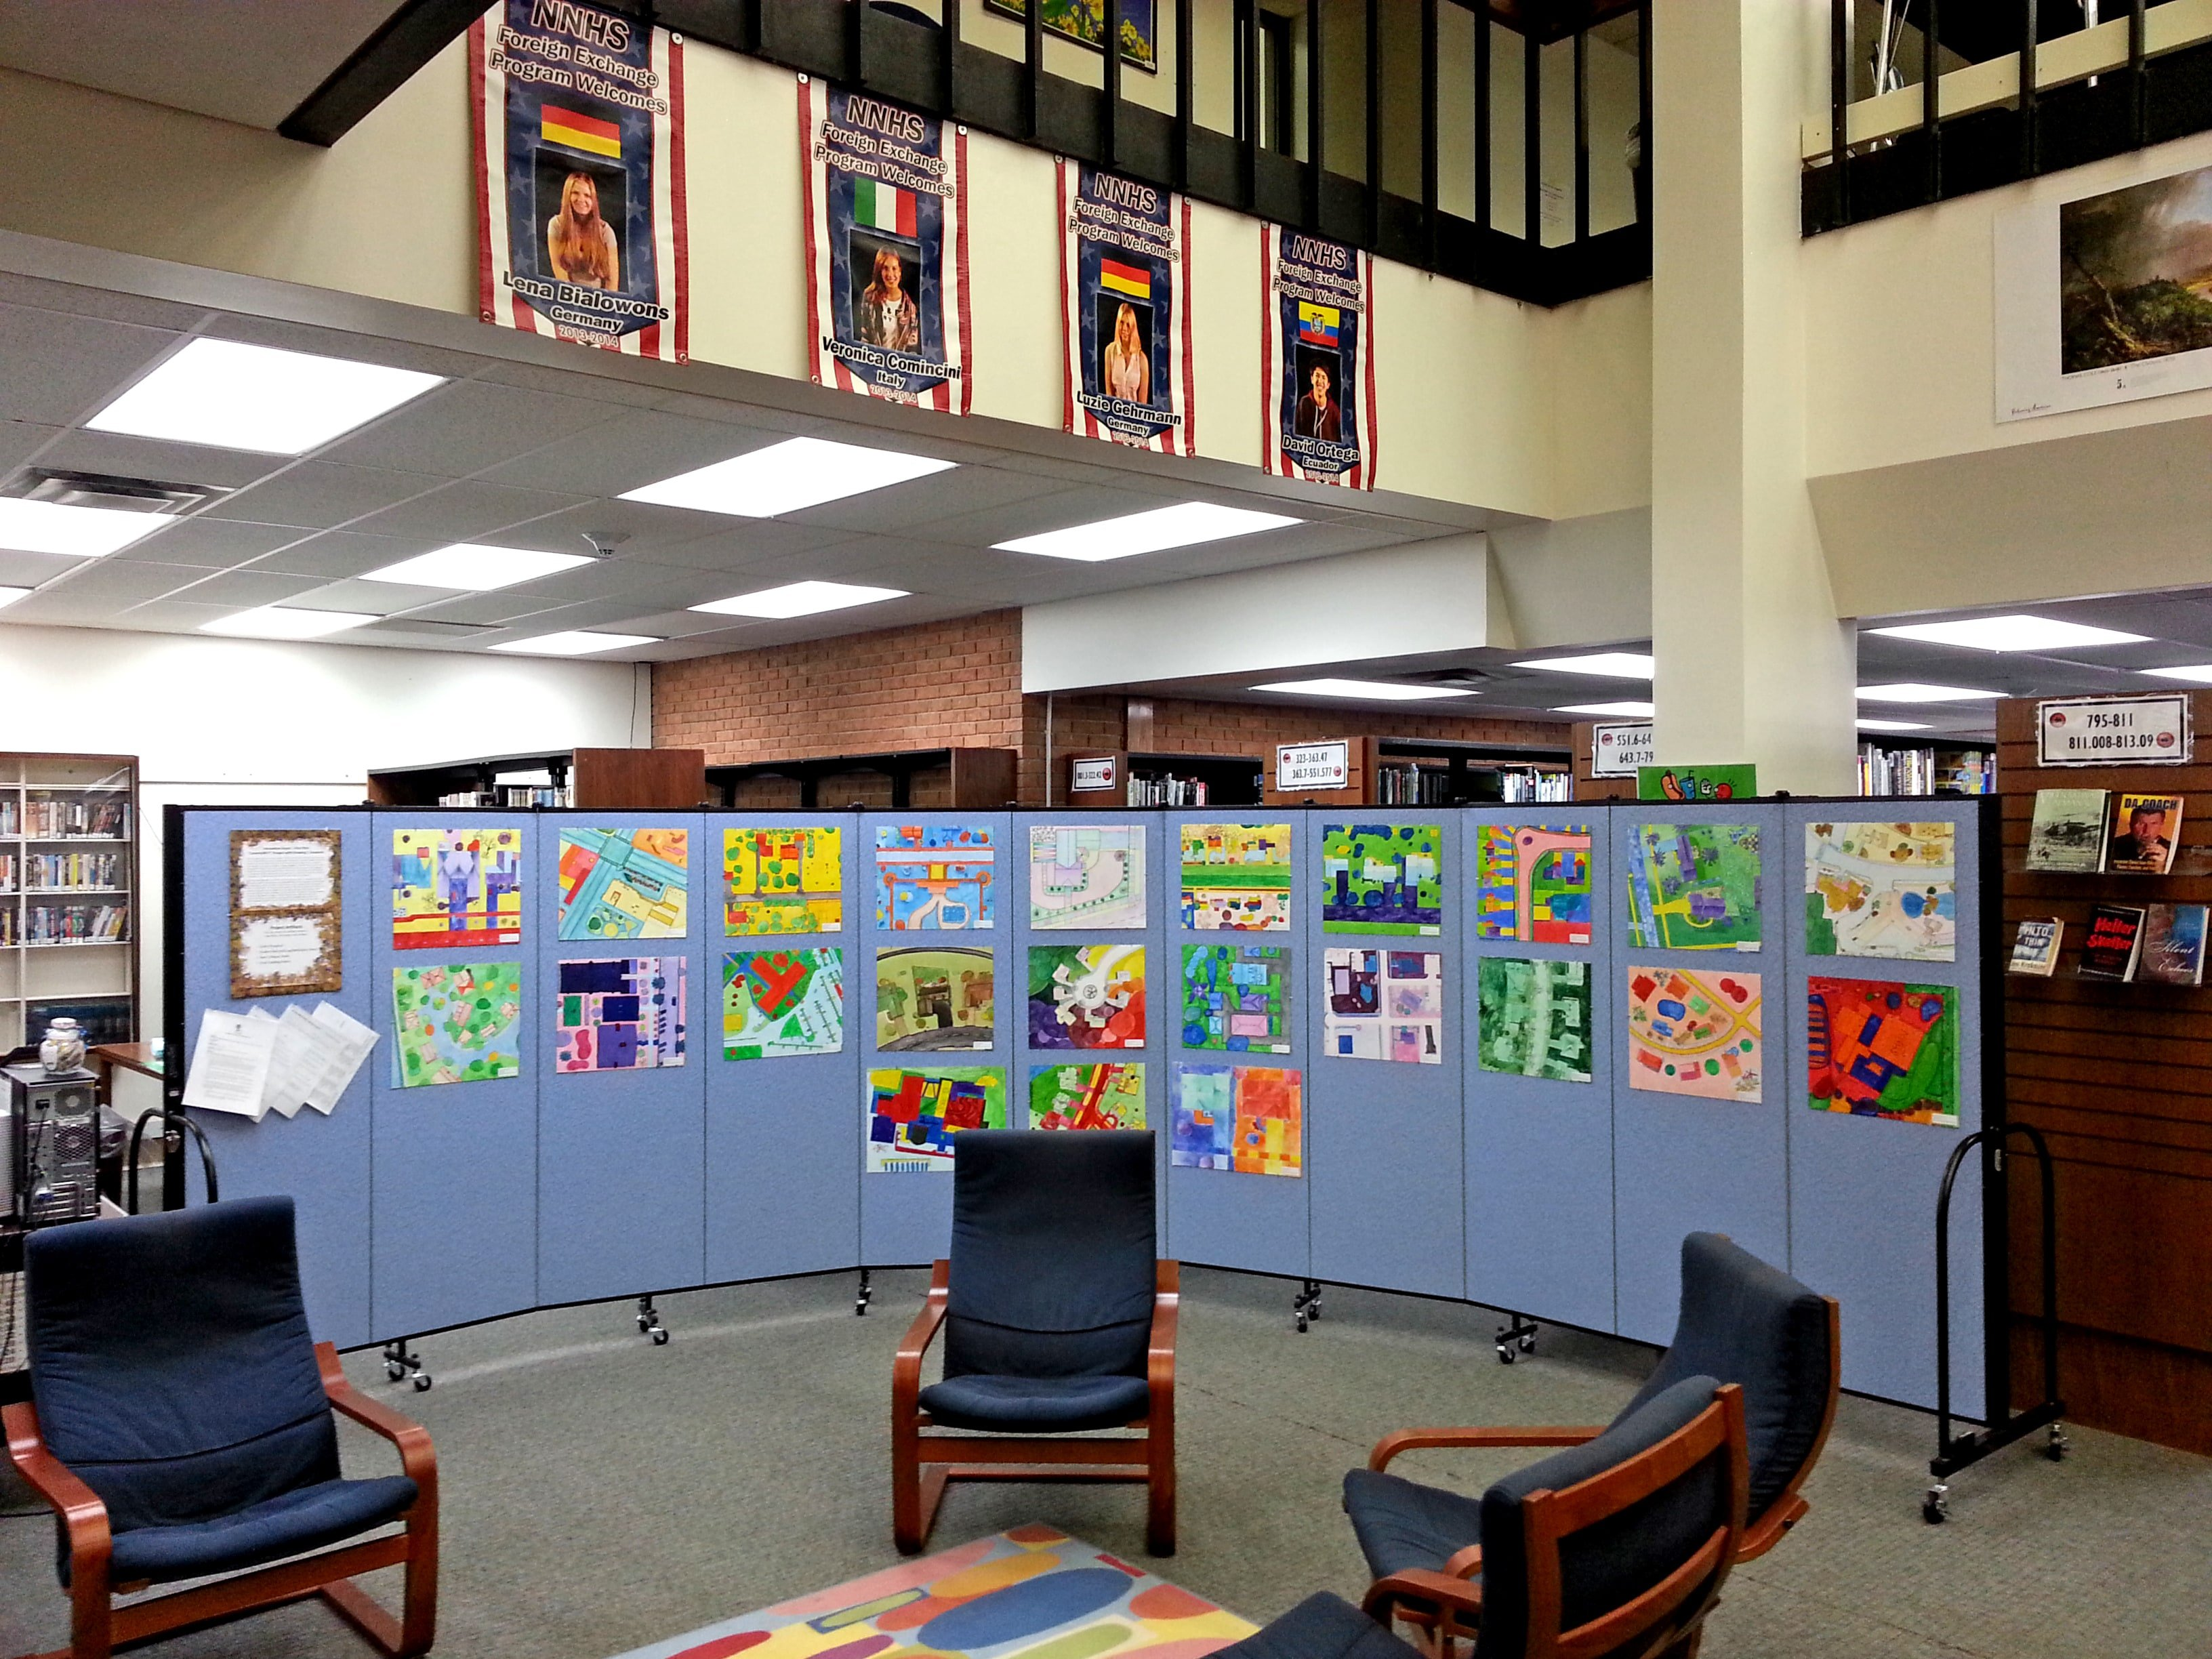 Student artwork displayed on an eleven panel room divider in a school library